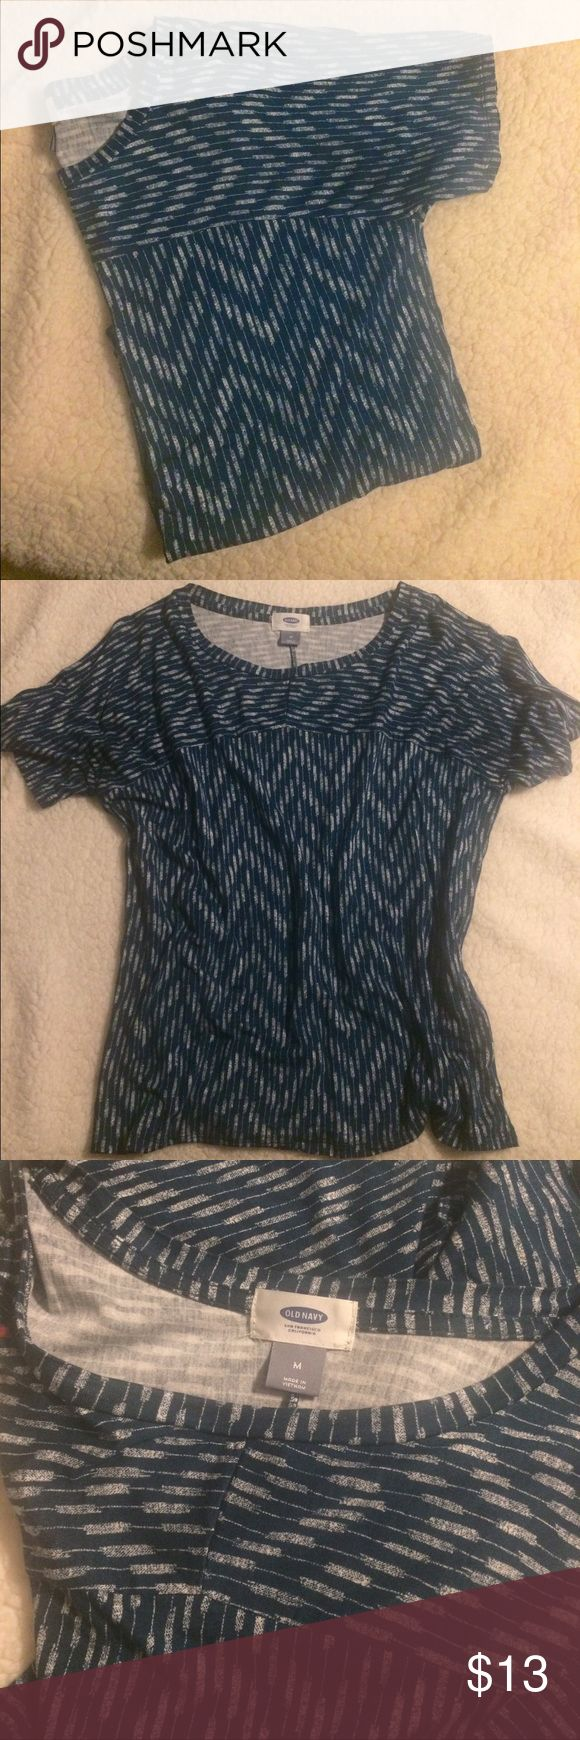 Blue and white chevron top size M Chevron and normal striped top teal/blue colored with white! New without tags. Loose fit. Tops Tees - Short Sleeve